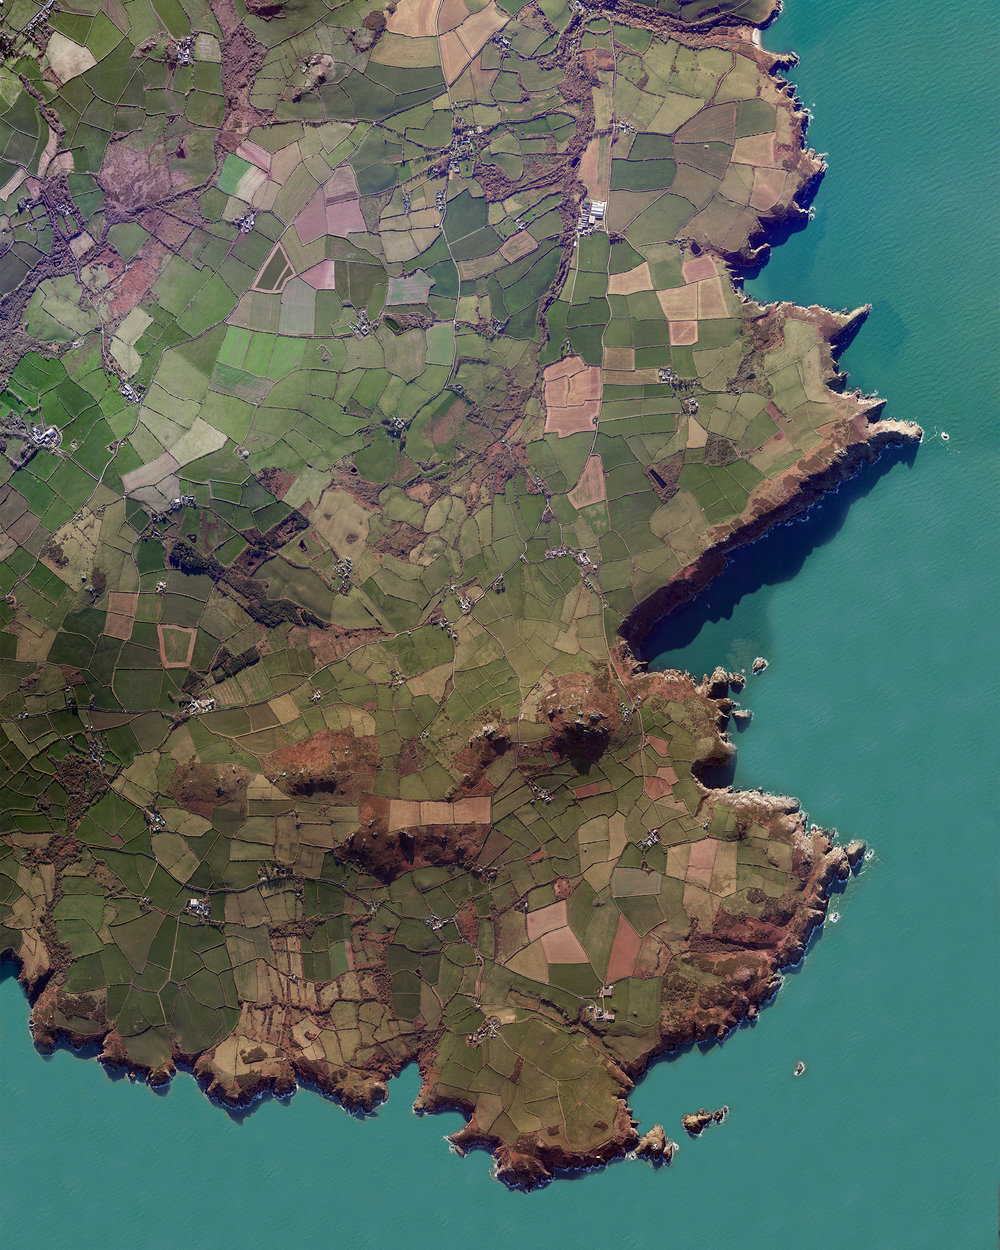 Pembrokeshire is a county in the south west of Wales. The area is home to Pembrokeshire Coast National Park, which includes a 186-mile walking trail known as the Pembrokeshire Coast Path. In the north of the county are the Preseli Hills, a wide stretch of high moorland with many prehistoric sites and the probable source of the bluestones that were used in the construction of the inner circle of Stonehenge in England.  Instagram:  http://bit.ly/2nN9hgH   52.0144943°, -5.0872119°